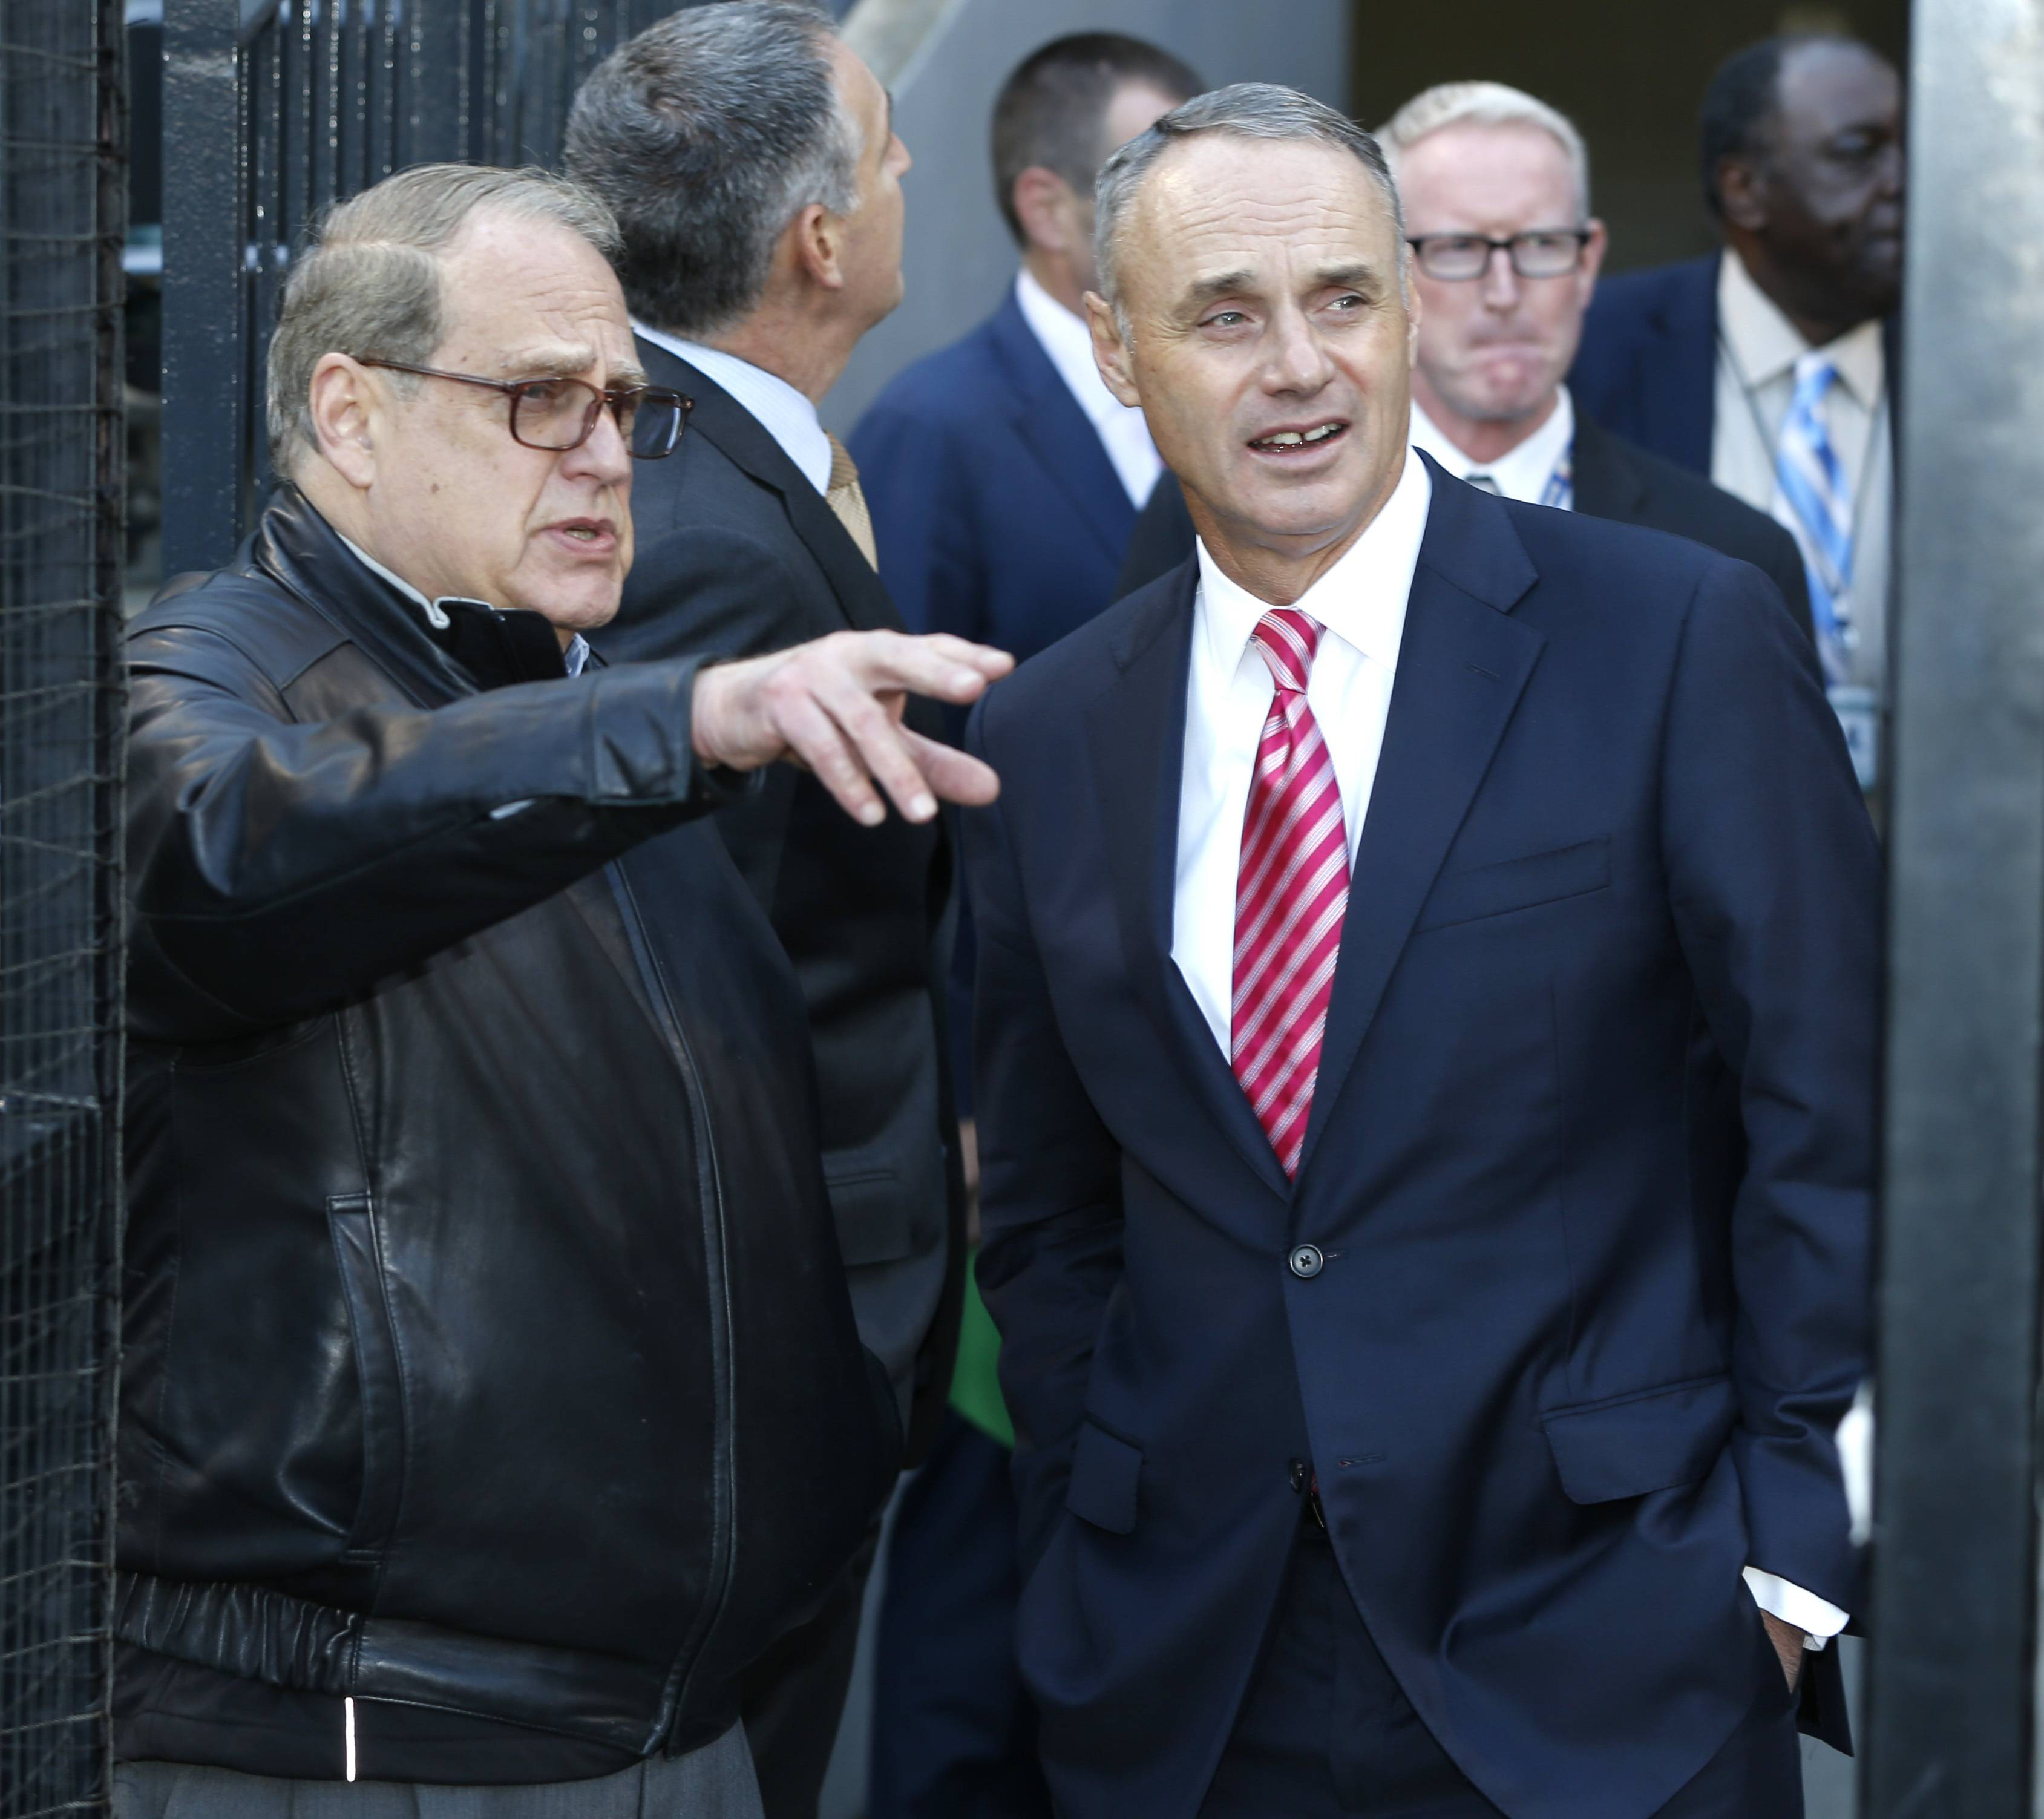 Chicago White Sox chairman Jerry Reinsdorf, left, talks with Major league Baseball commissioner Rob Manfred before a baseball game between the White Sox and the Boston Red Sox Thursday, May 5, 2016, in Chicago. (AP Photo/Charles Rex Arbogast)